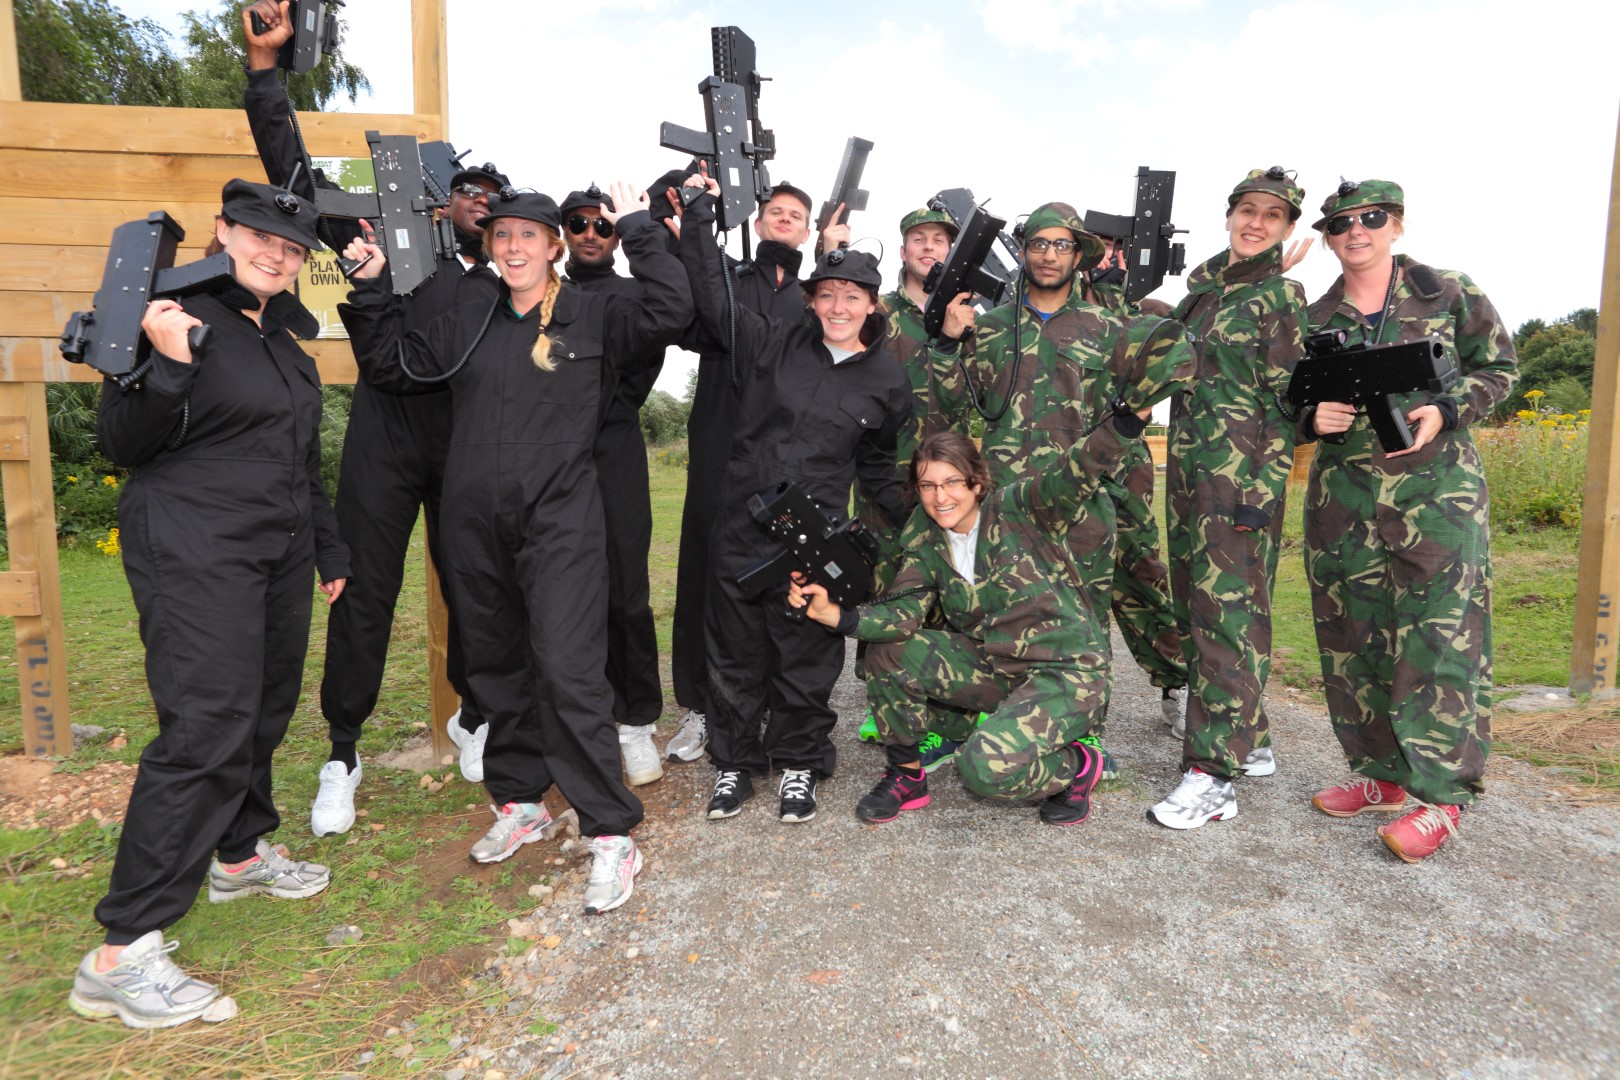 A group of people with laser tag weapons